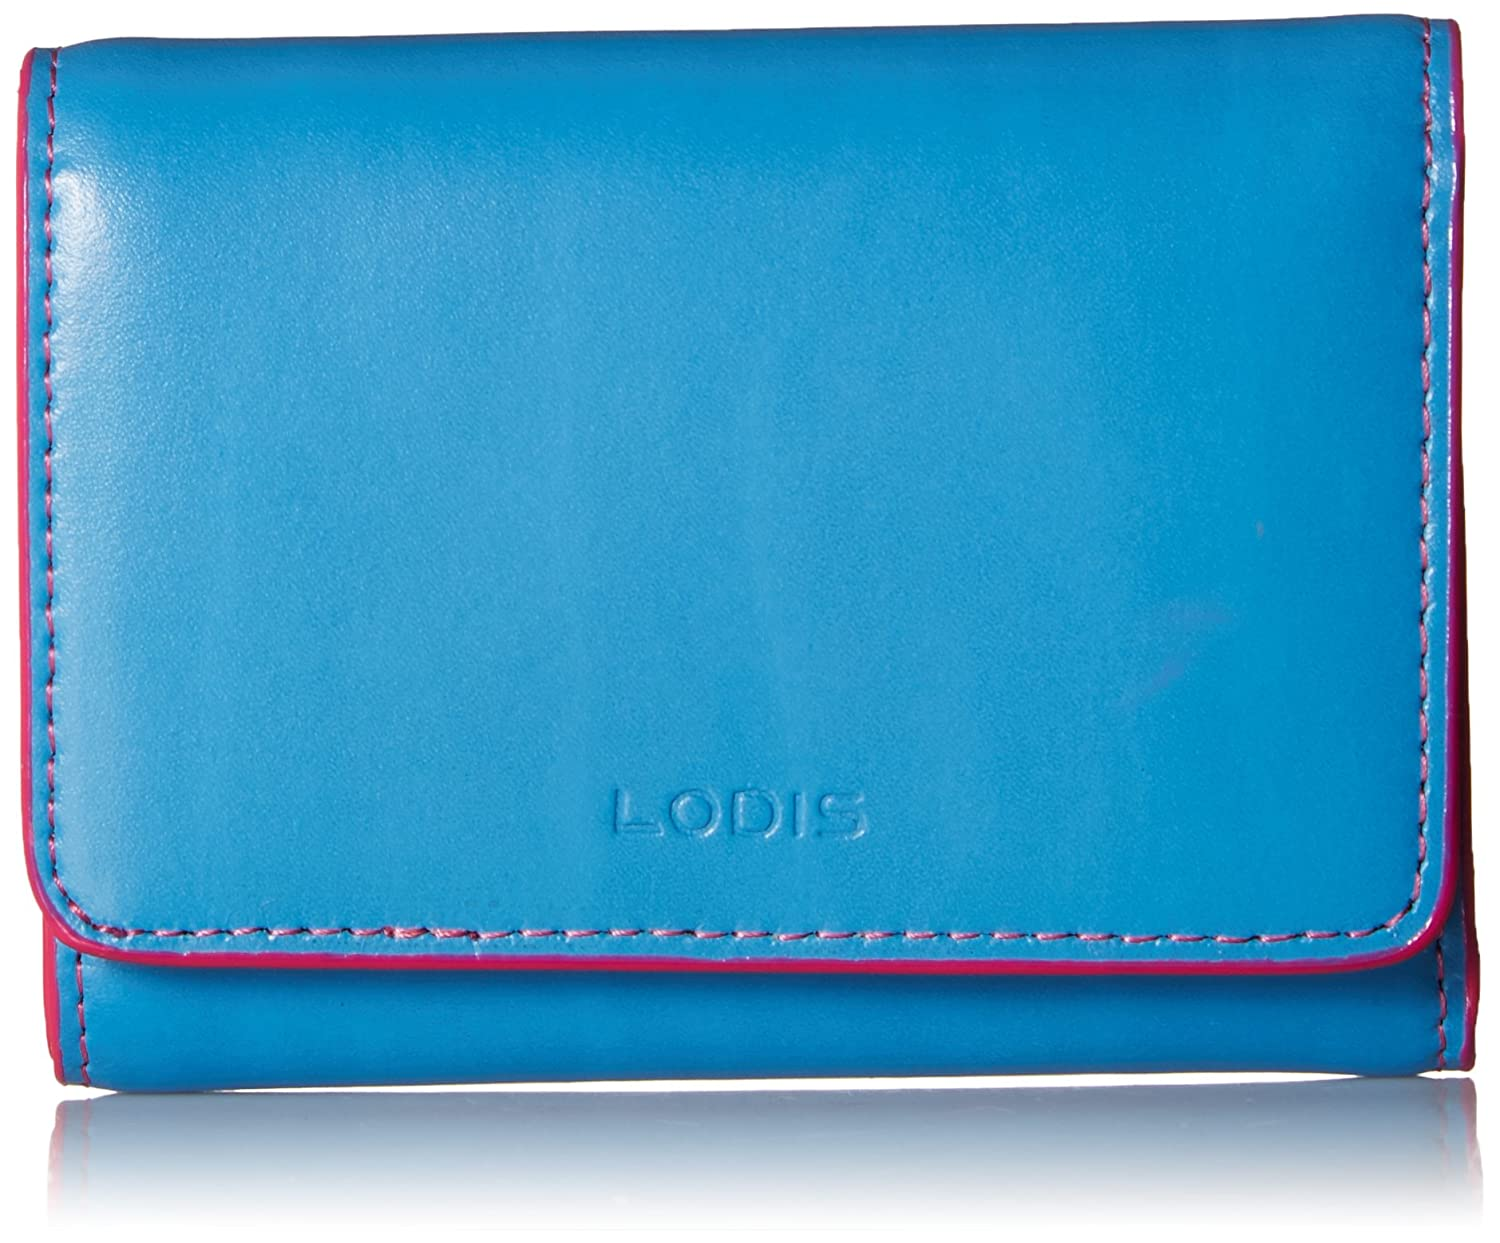 bluee Hot Pink Lodis Audrey Rfid Mallory French Purse